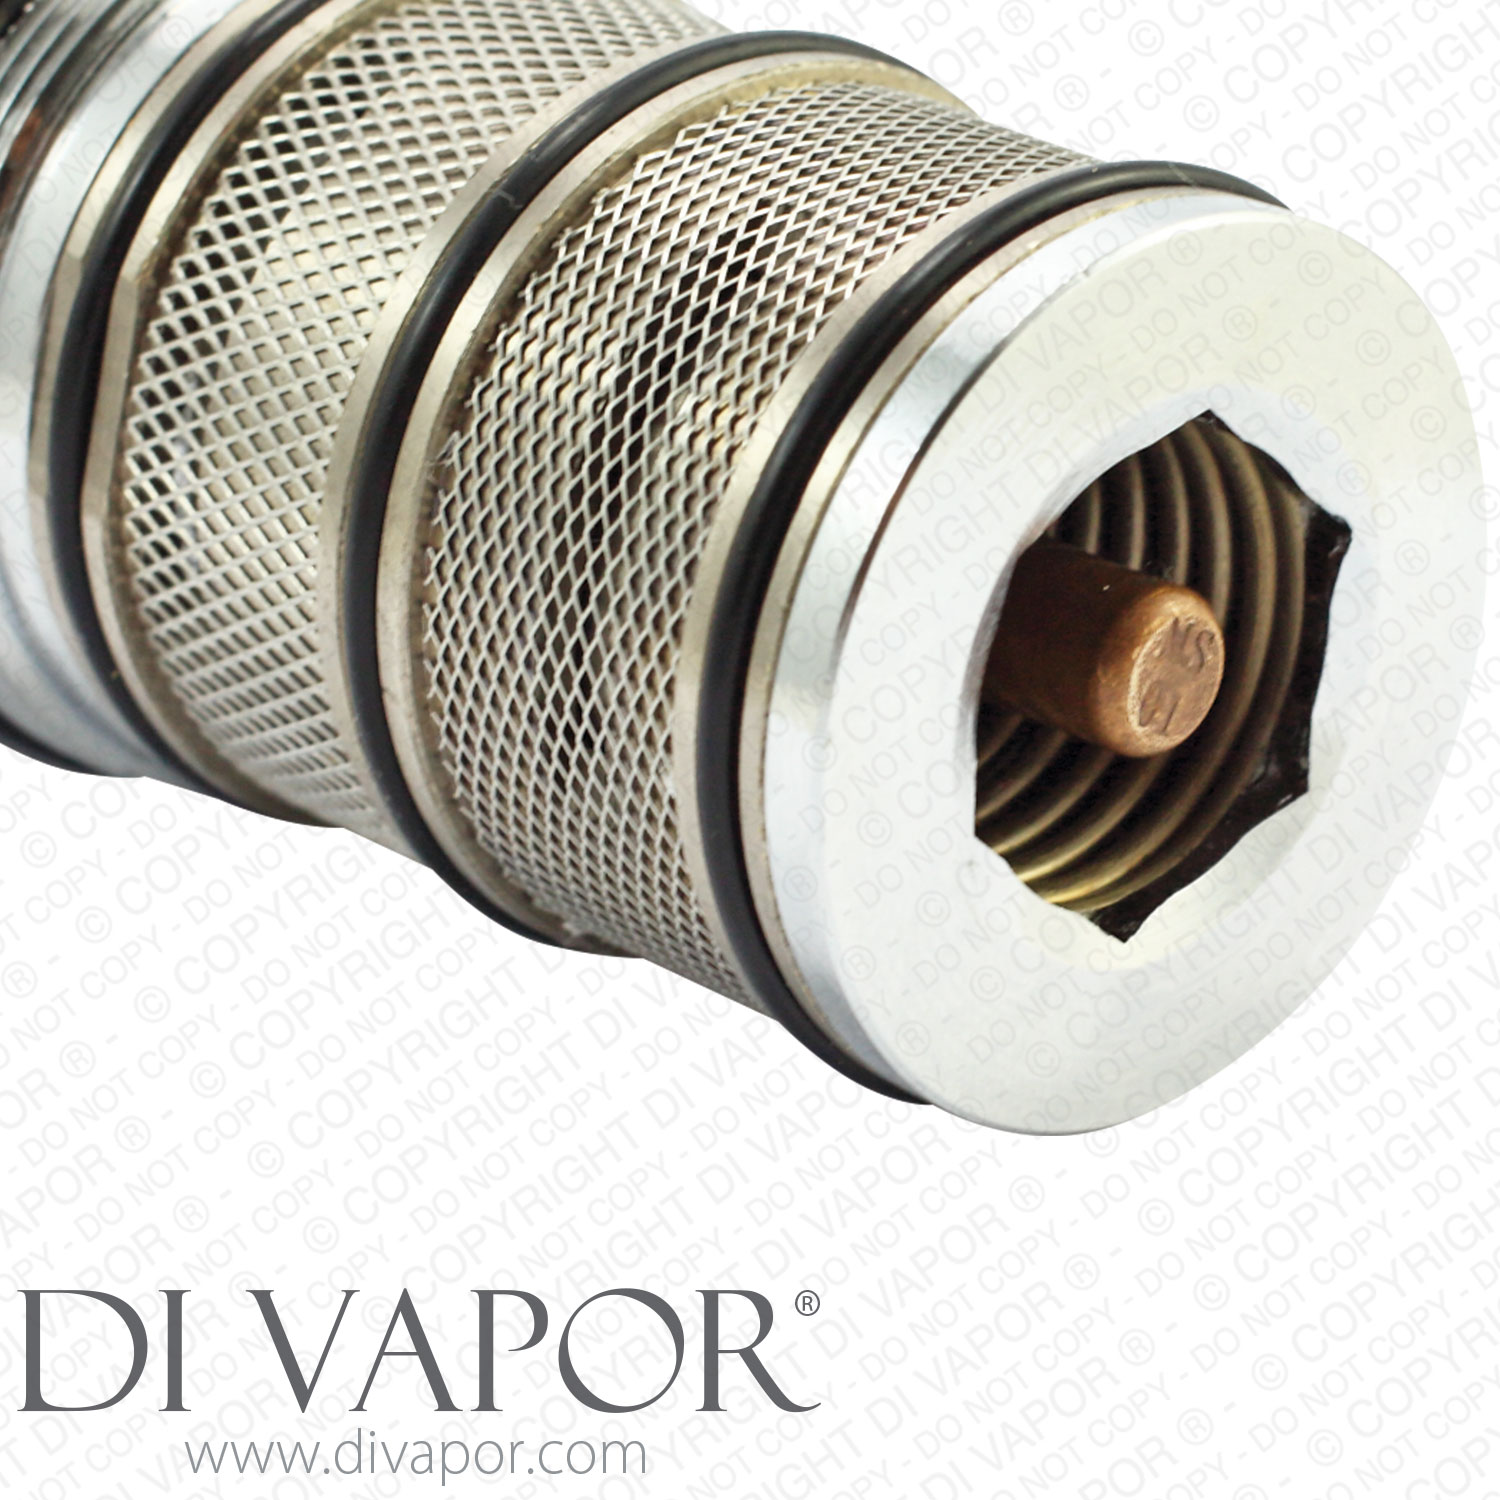 thermostatic cartridge for ib rubinetterie concealed shower mixer ib rubinetterie shower mixer cartridge